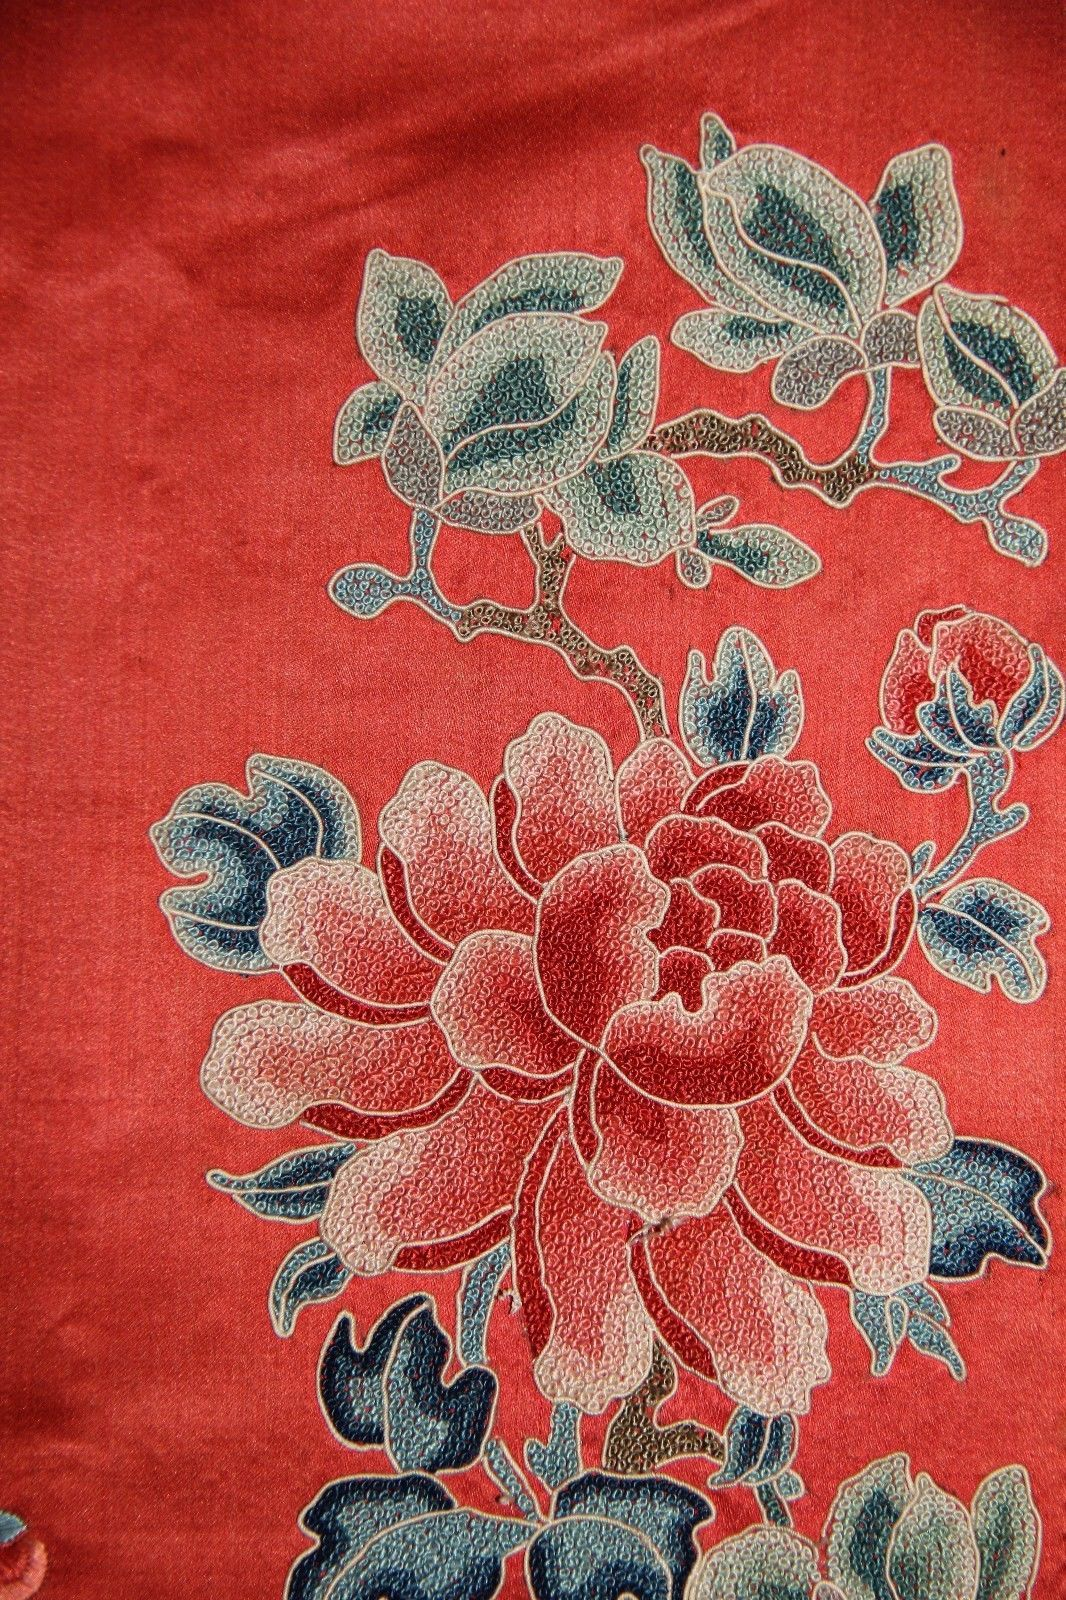 0d14d21bc Antique Chinese Red Robe Multicolored Floral Silk Embroidery 19 TH Century  | eBay